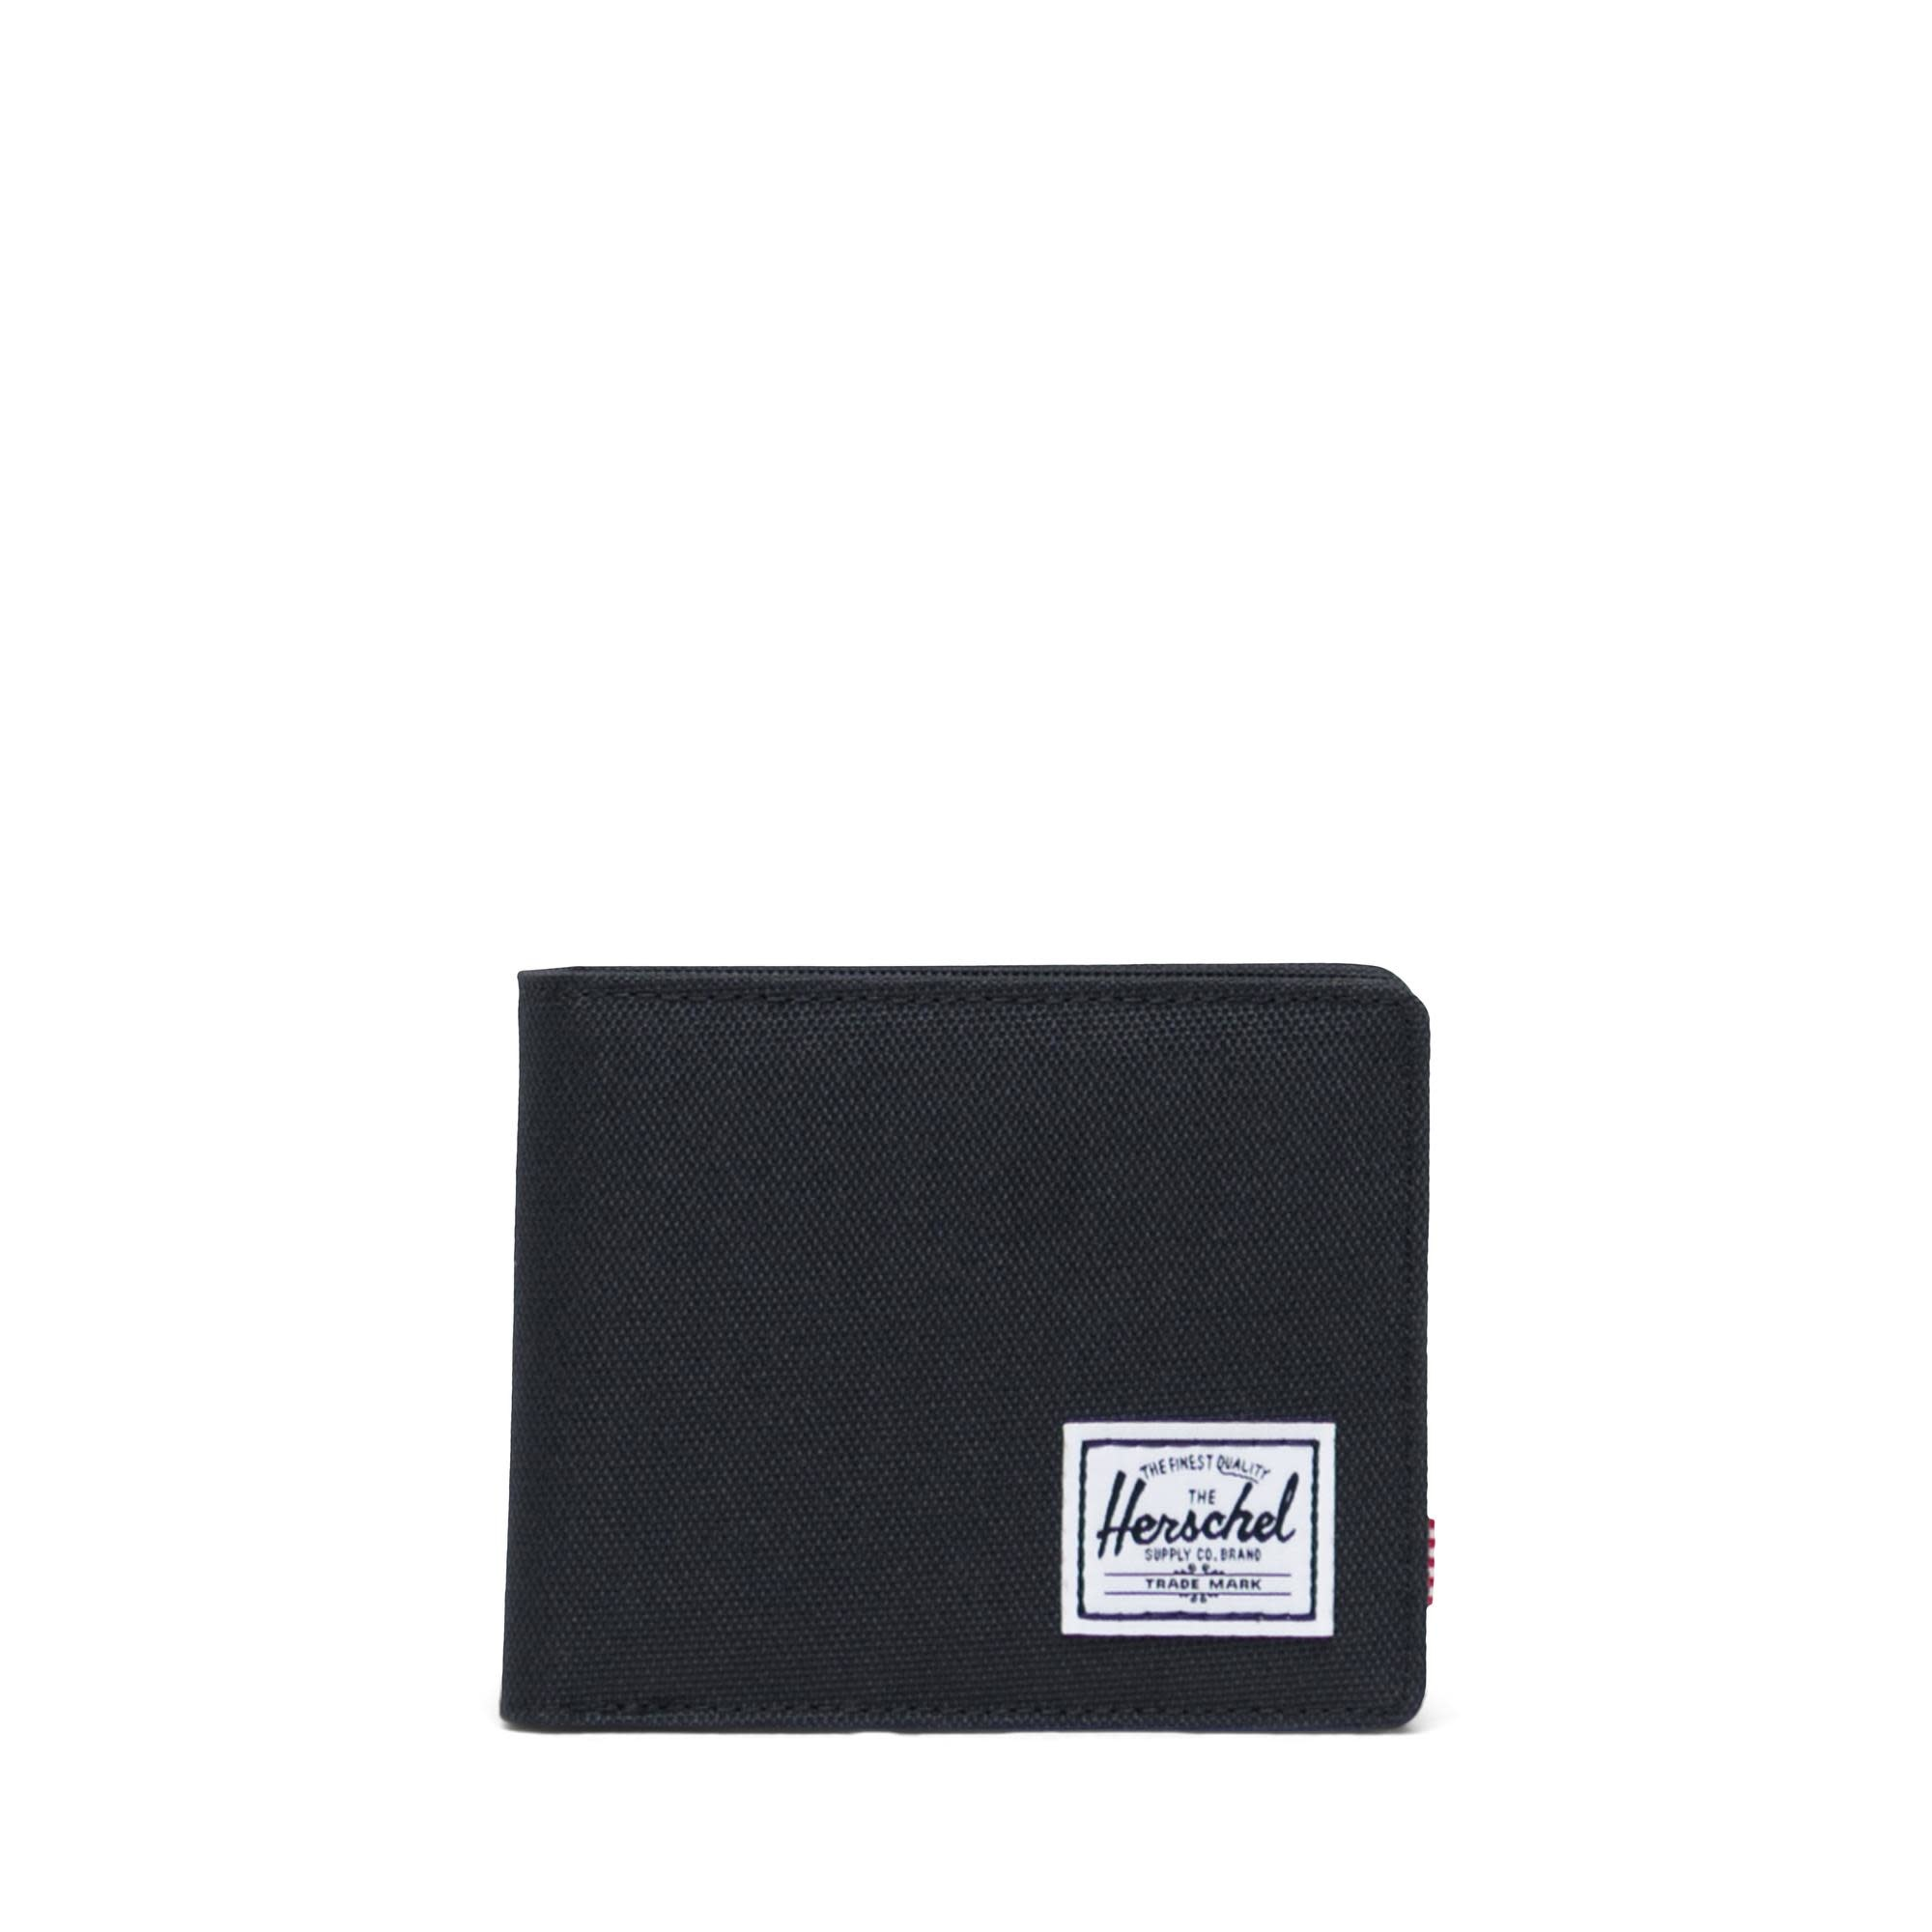 Herschel Supply Co. Herschel Roy Coin Wallet - Black/RFID